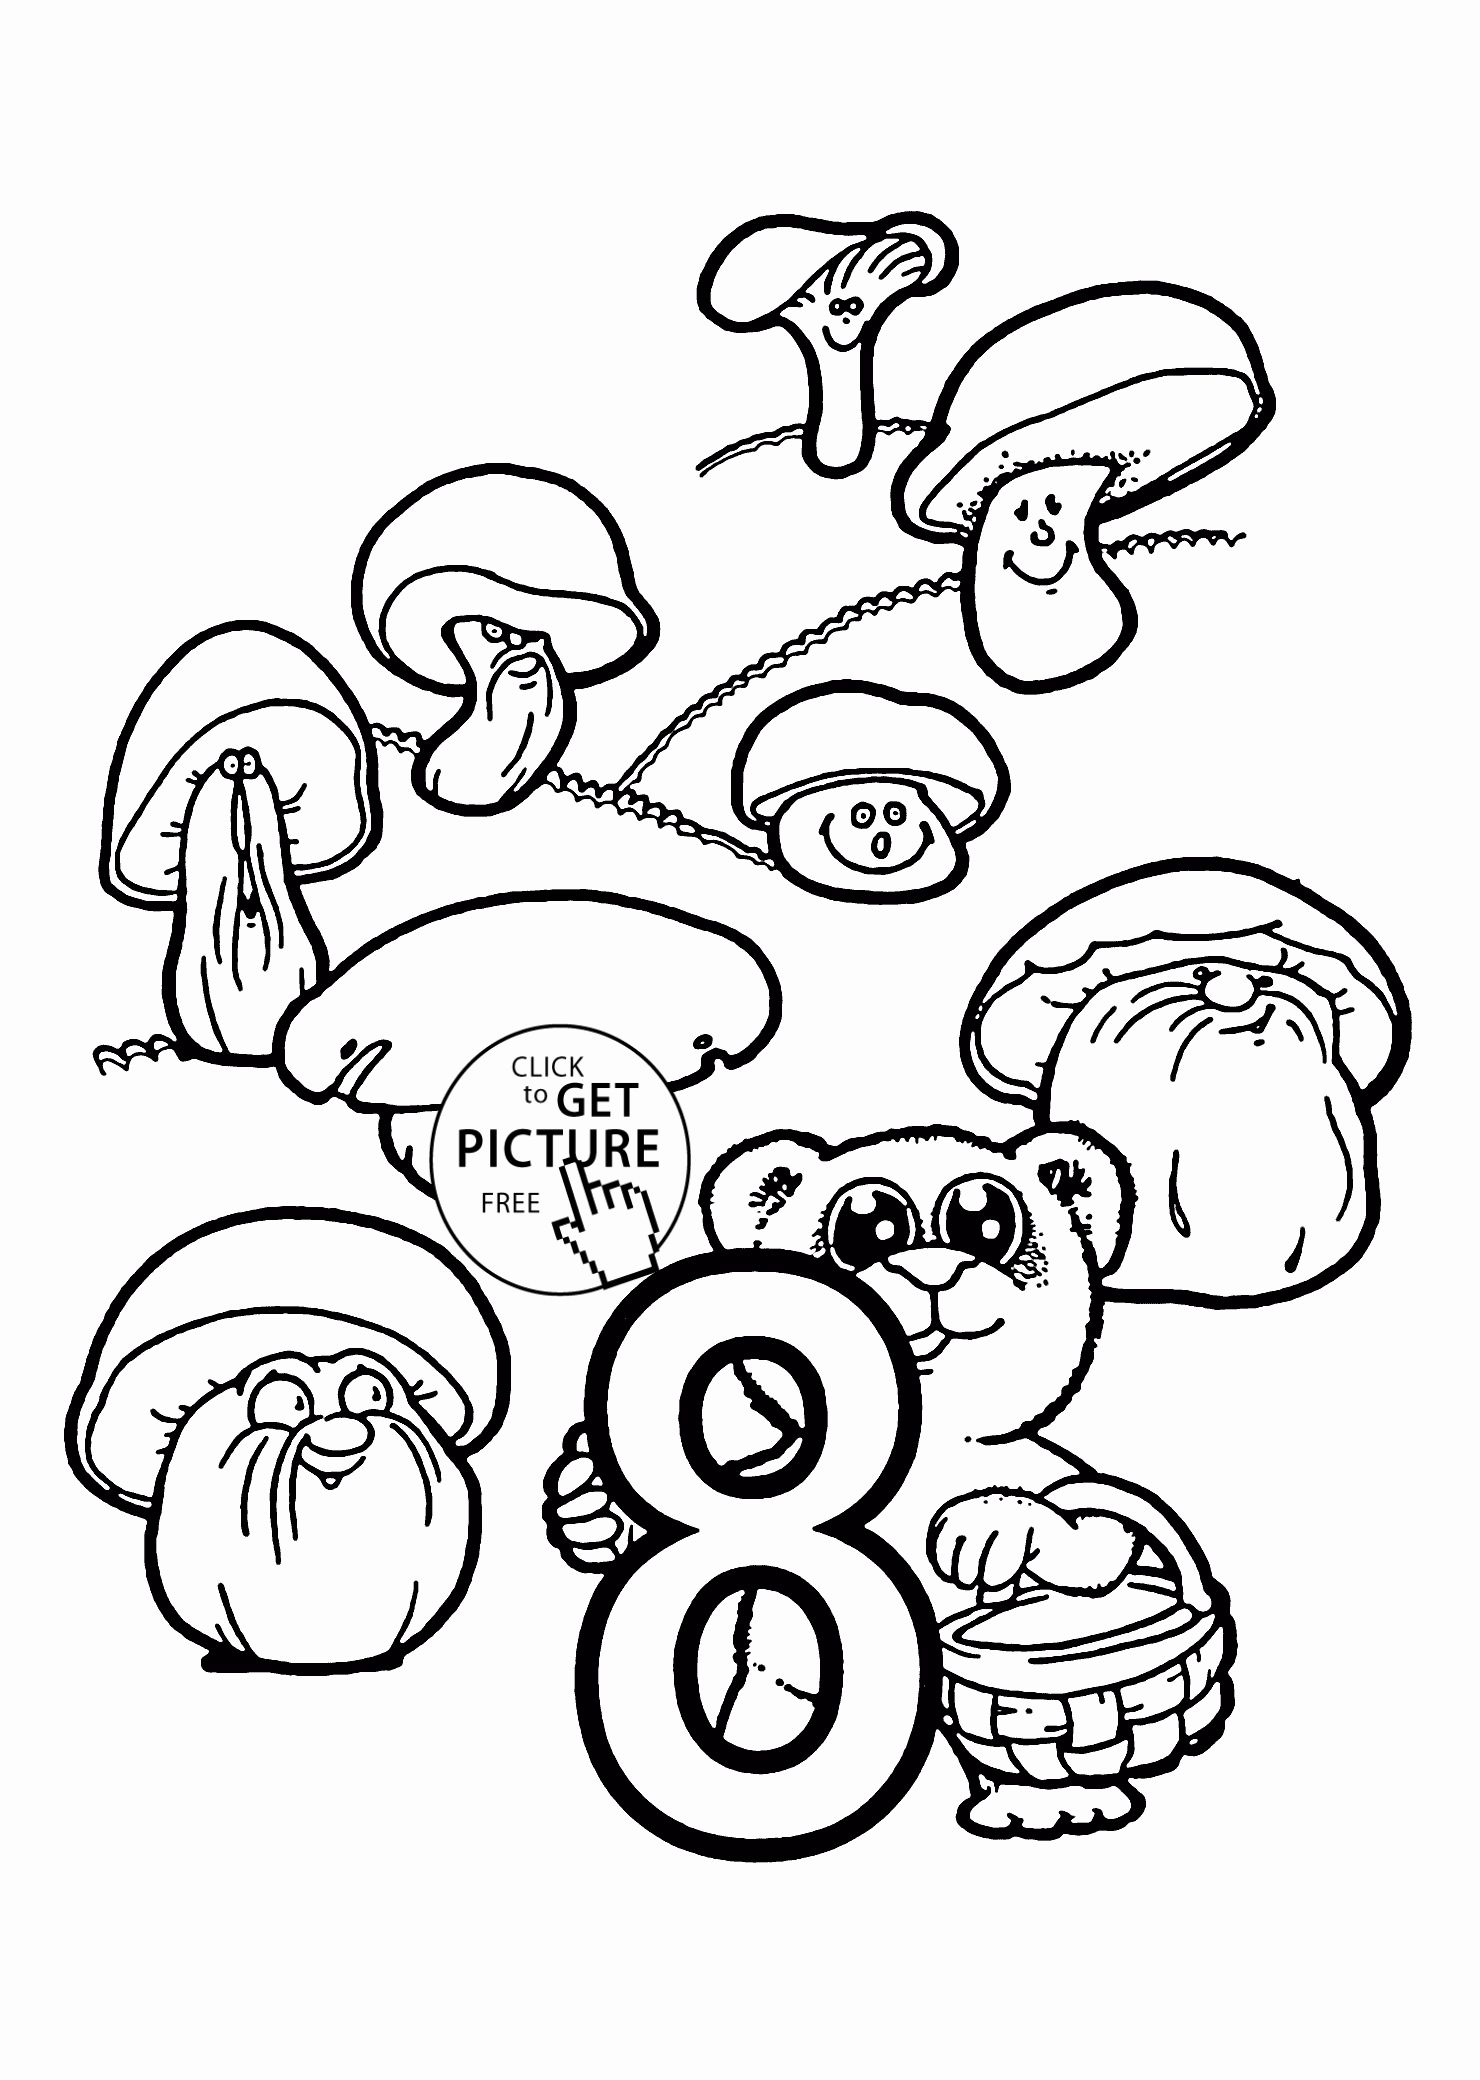 Number 8 Coloring Page Crafts And Worksheets For Preschool Toddler And Kindergarten Coloring Pages For Kids Numbers Preschool Christmas Worksheets